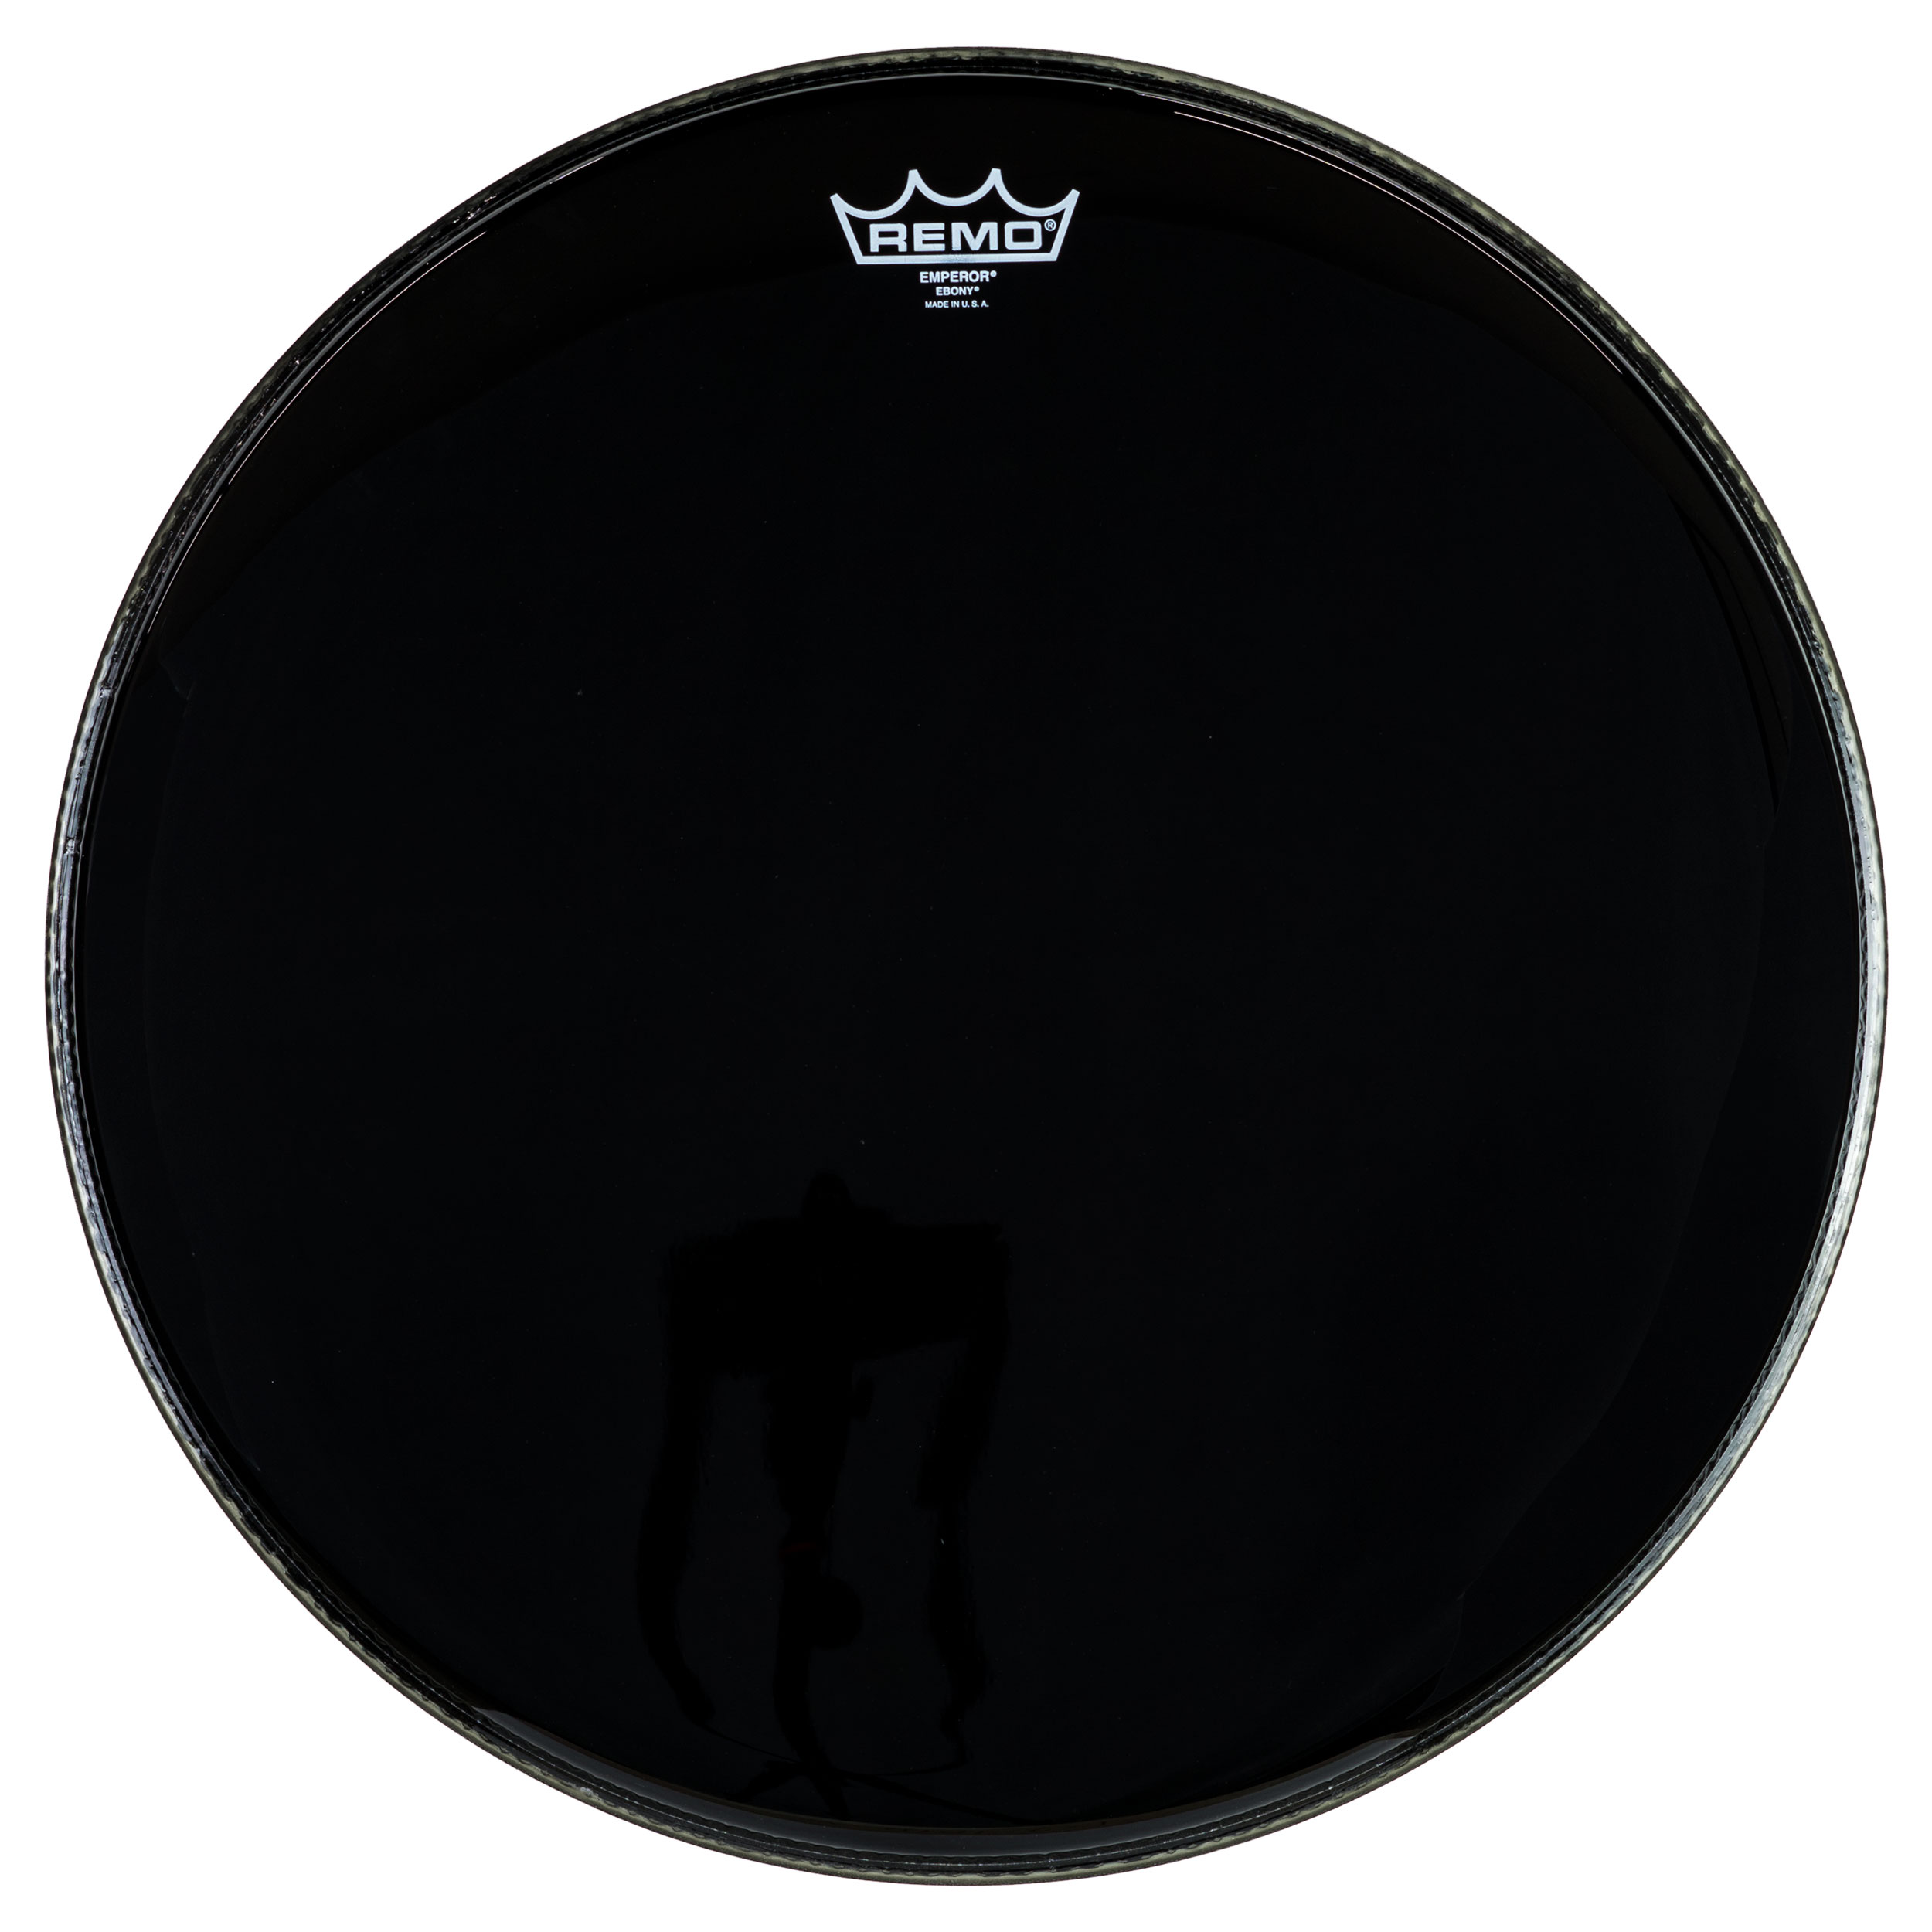 "Remo 16"" Emperor Ebony Drum Head"